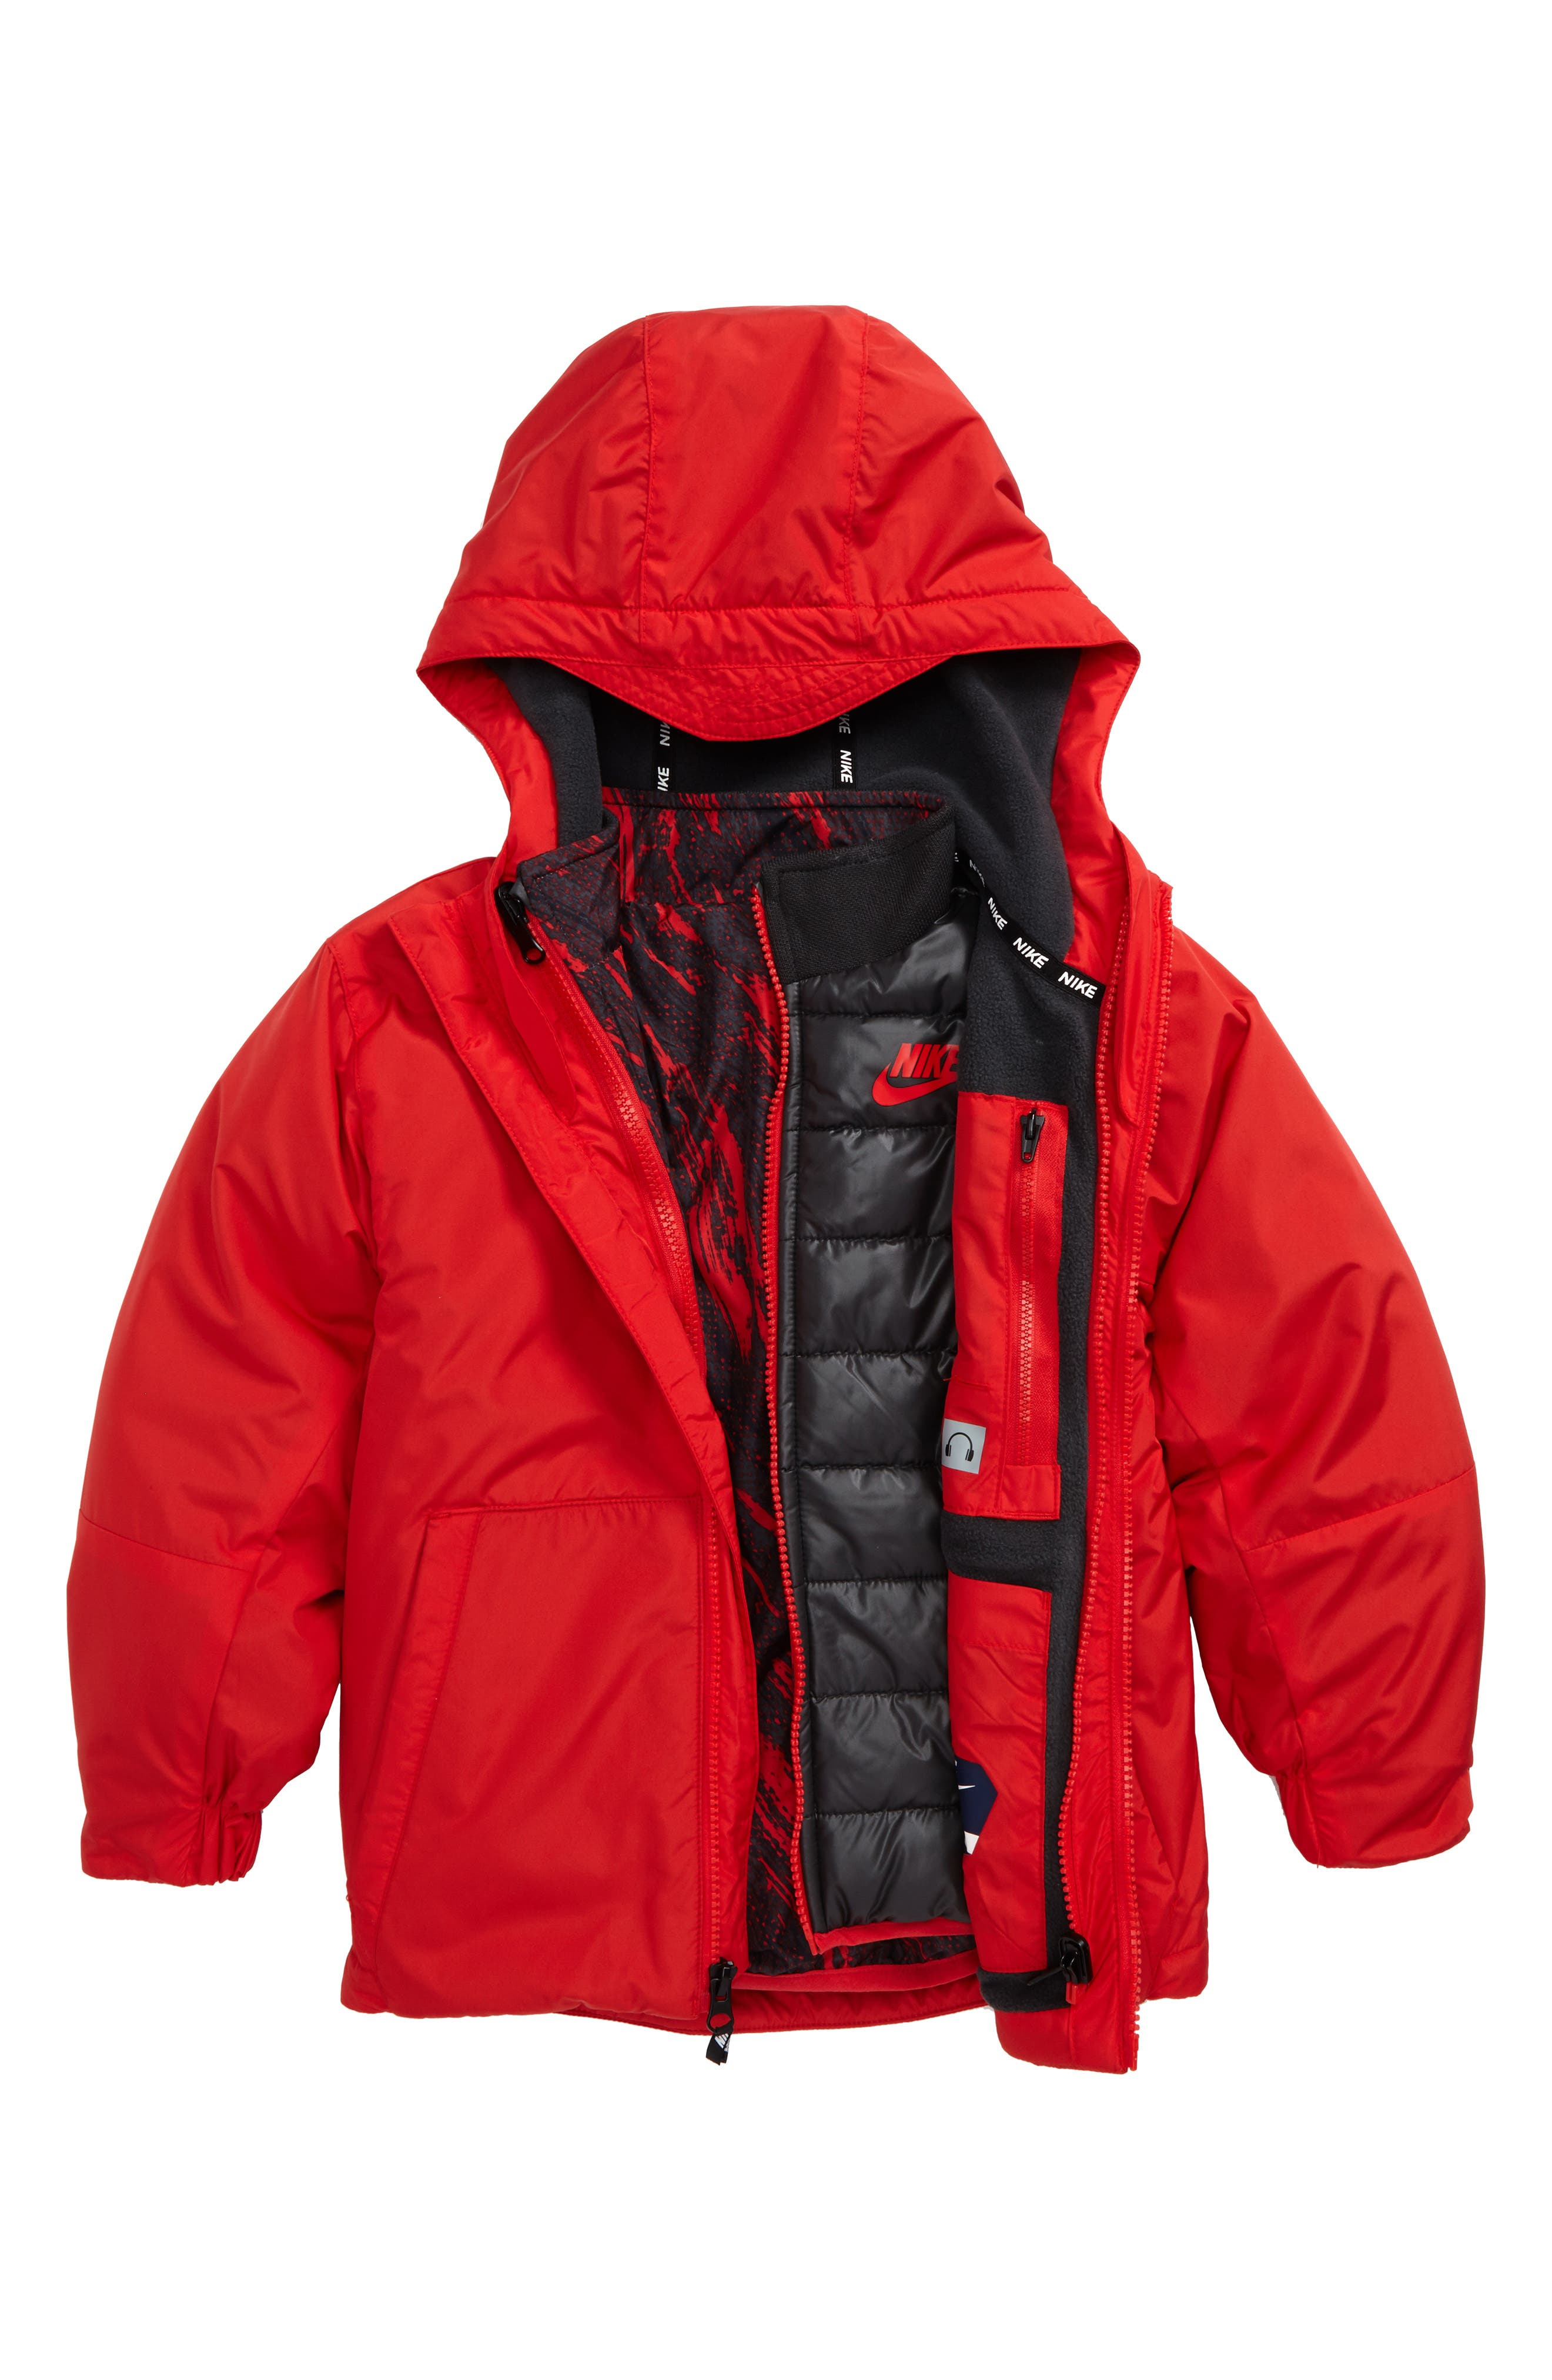 Systems 3-in-1 Jacket,                             Main thumbnail 1, color,                             622